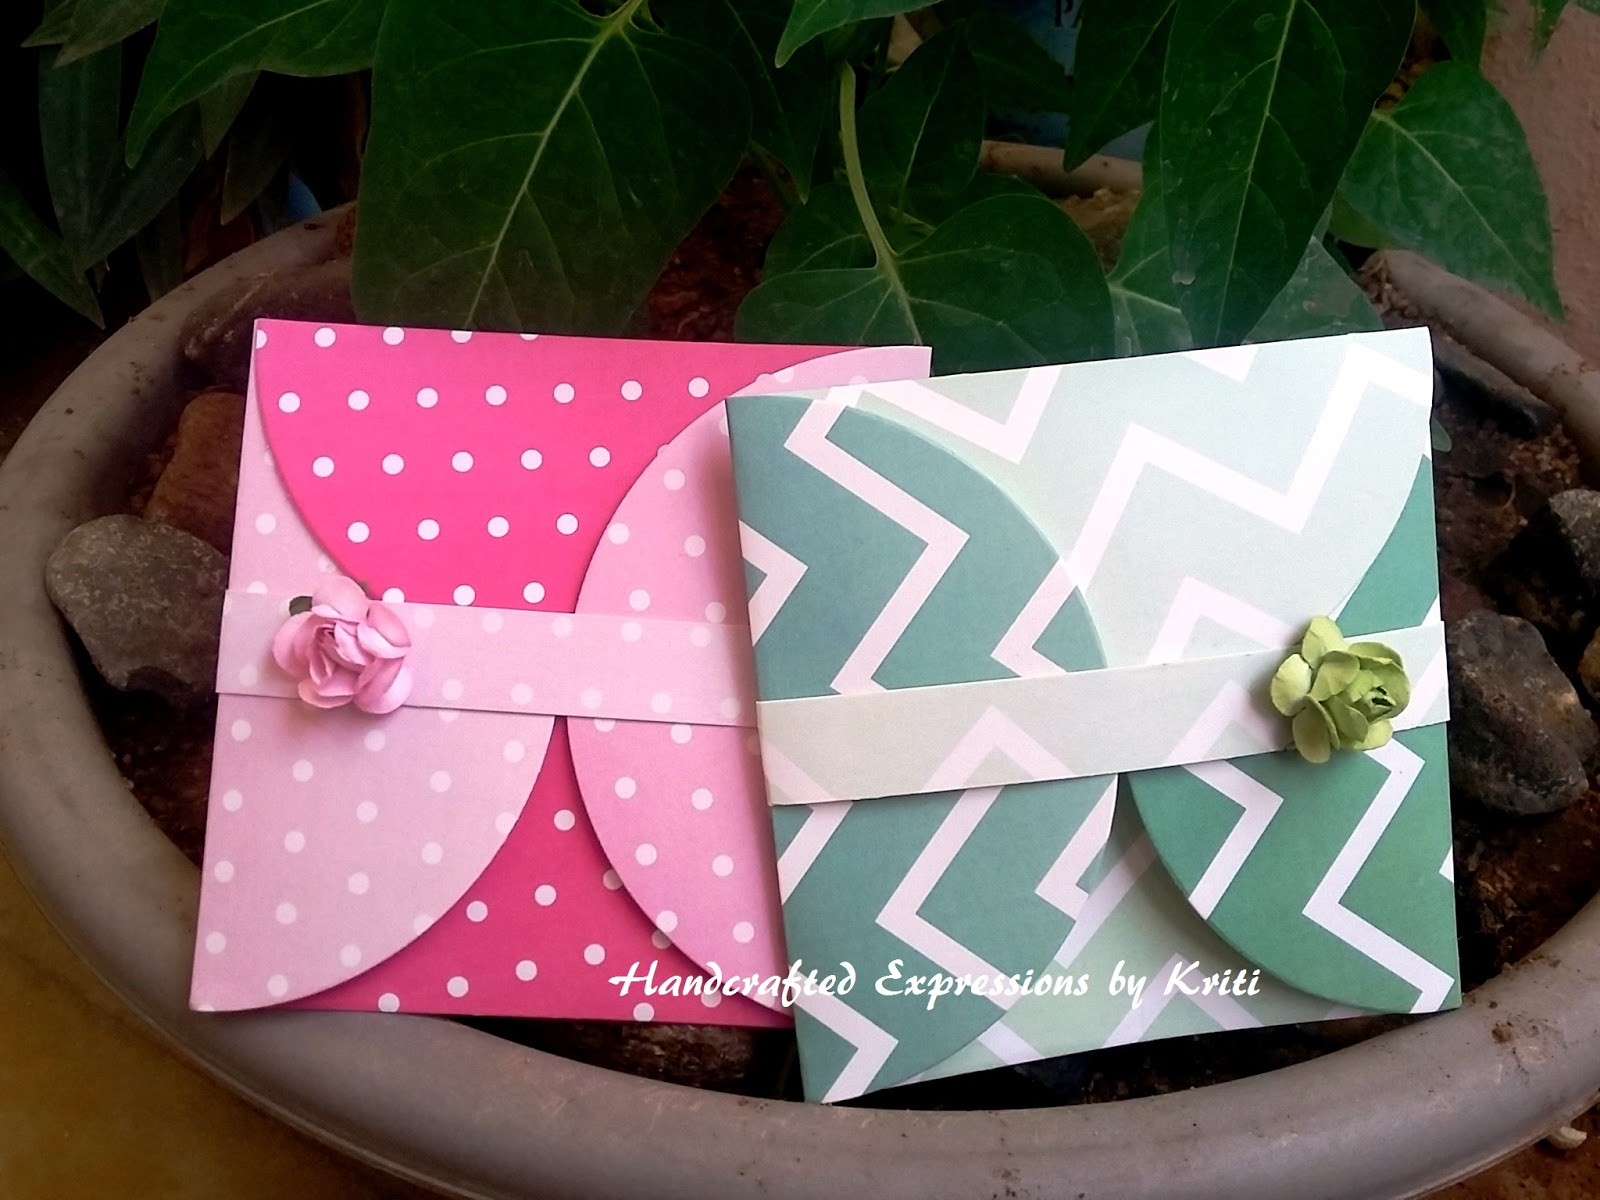 Handcrafted Expressions by Kriti: DIY Gift Envelopes by Kriti Mishra